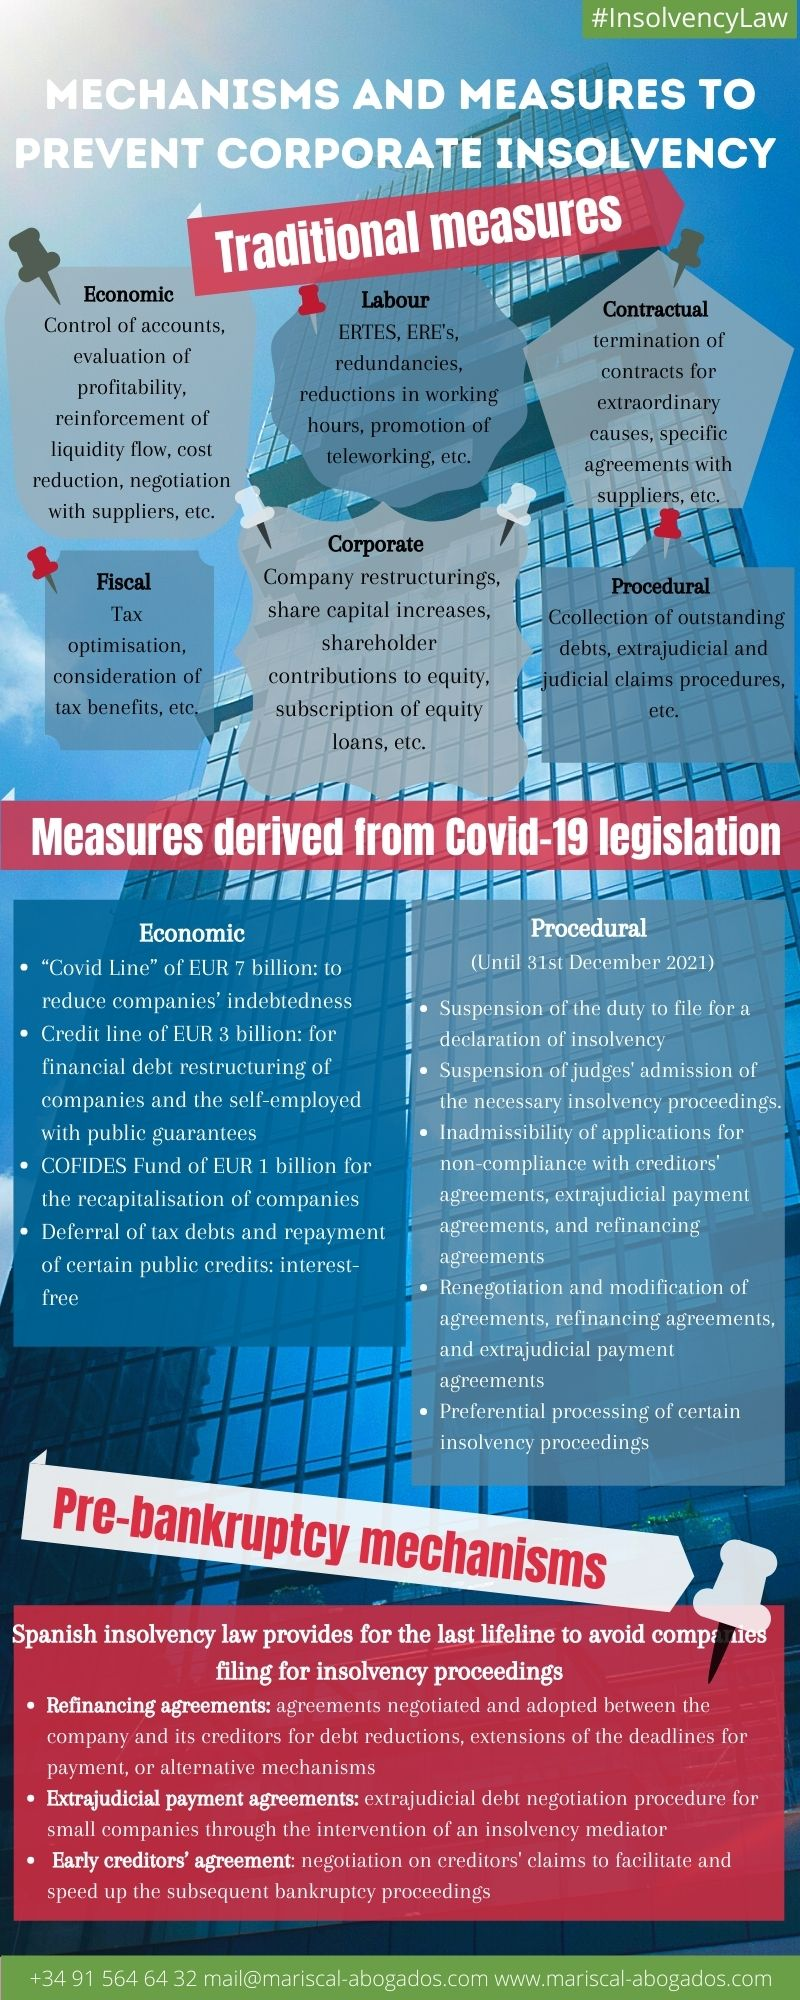 Mechanisms and measures to prevent corporate insolvency in Spain